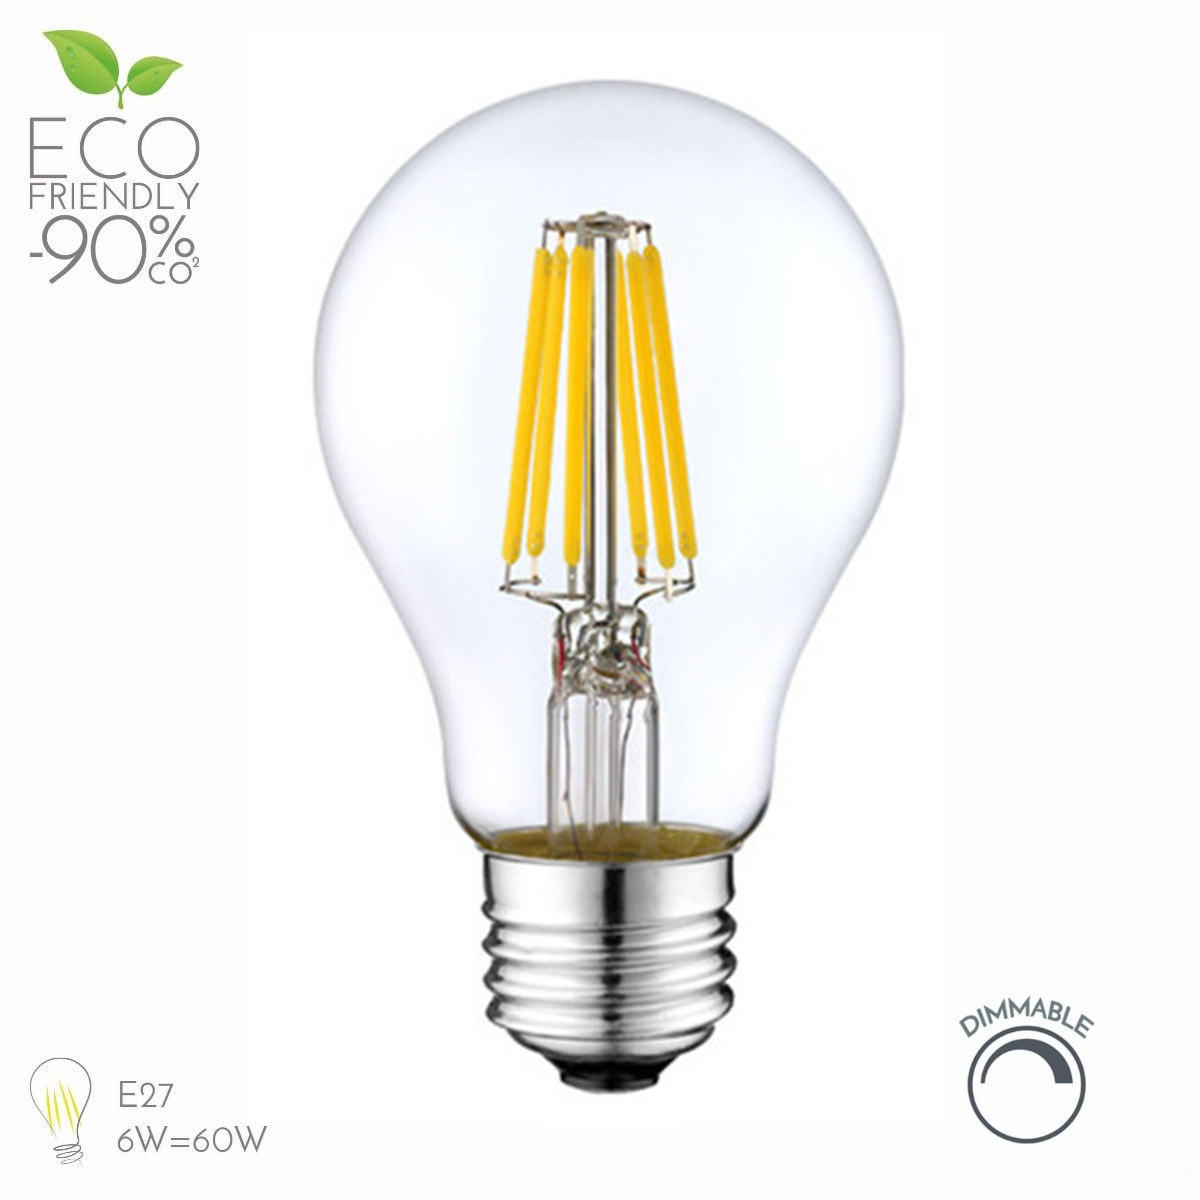 Led E27 Hot Item Factory Price Best Selling E27 Edison Led Lights Indoor Lighting 4w 9w 12w Led Lamps